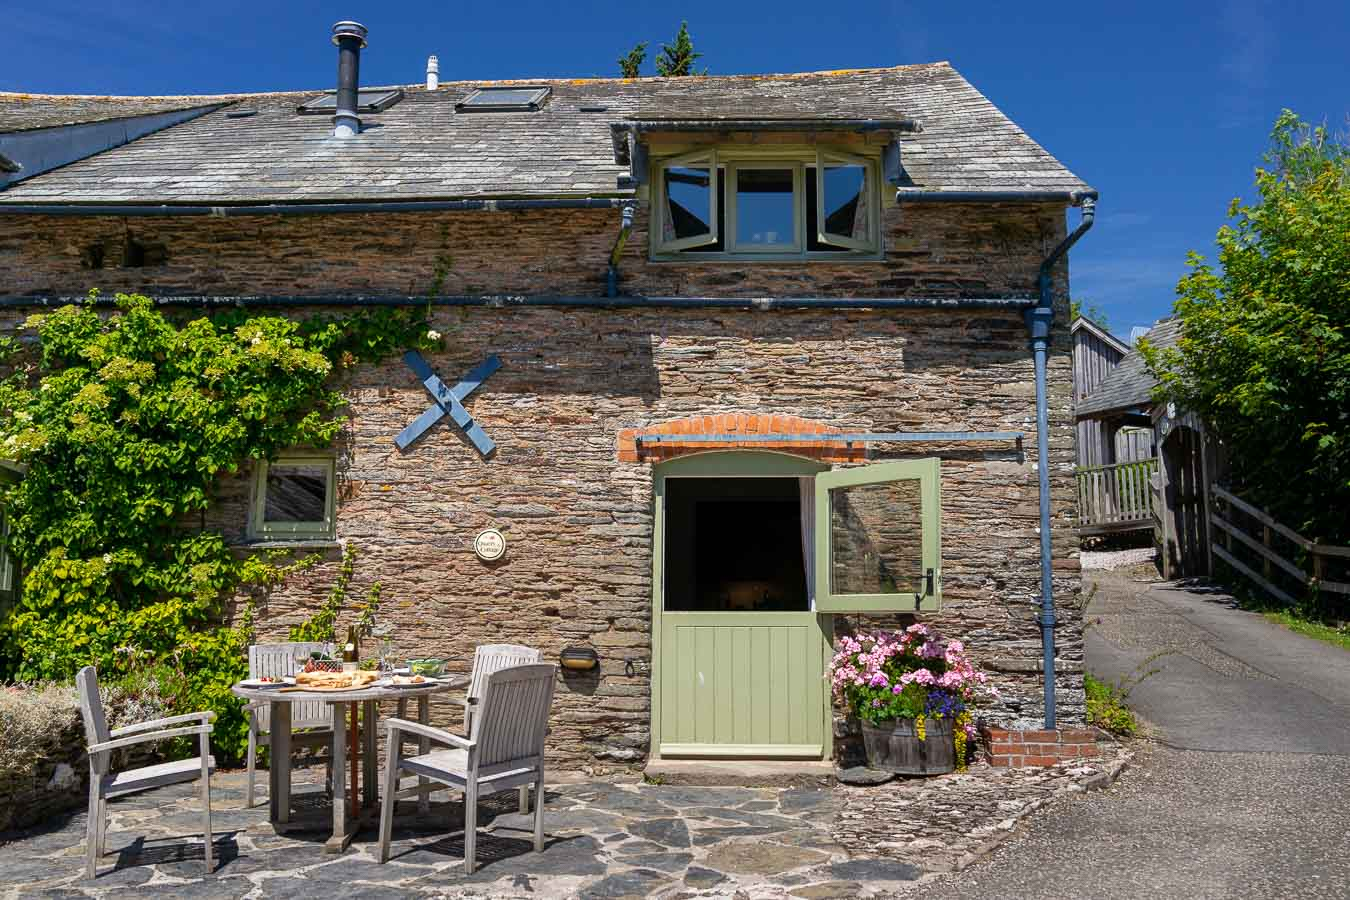 Quarry, holiday cottage with access to large indoor pool. Sleeps 4 people. Flear Farm, Devon.